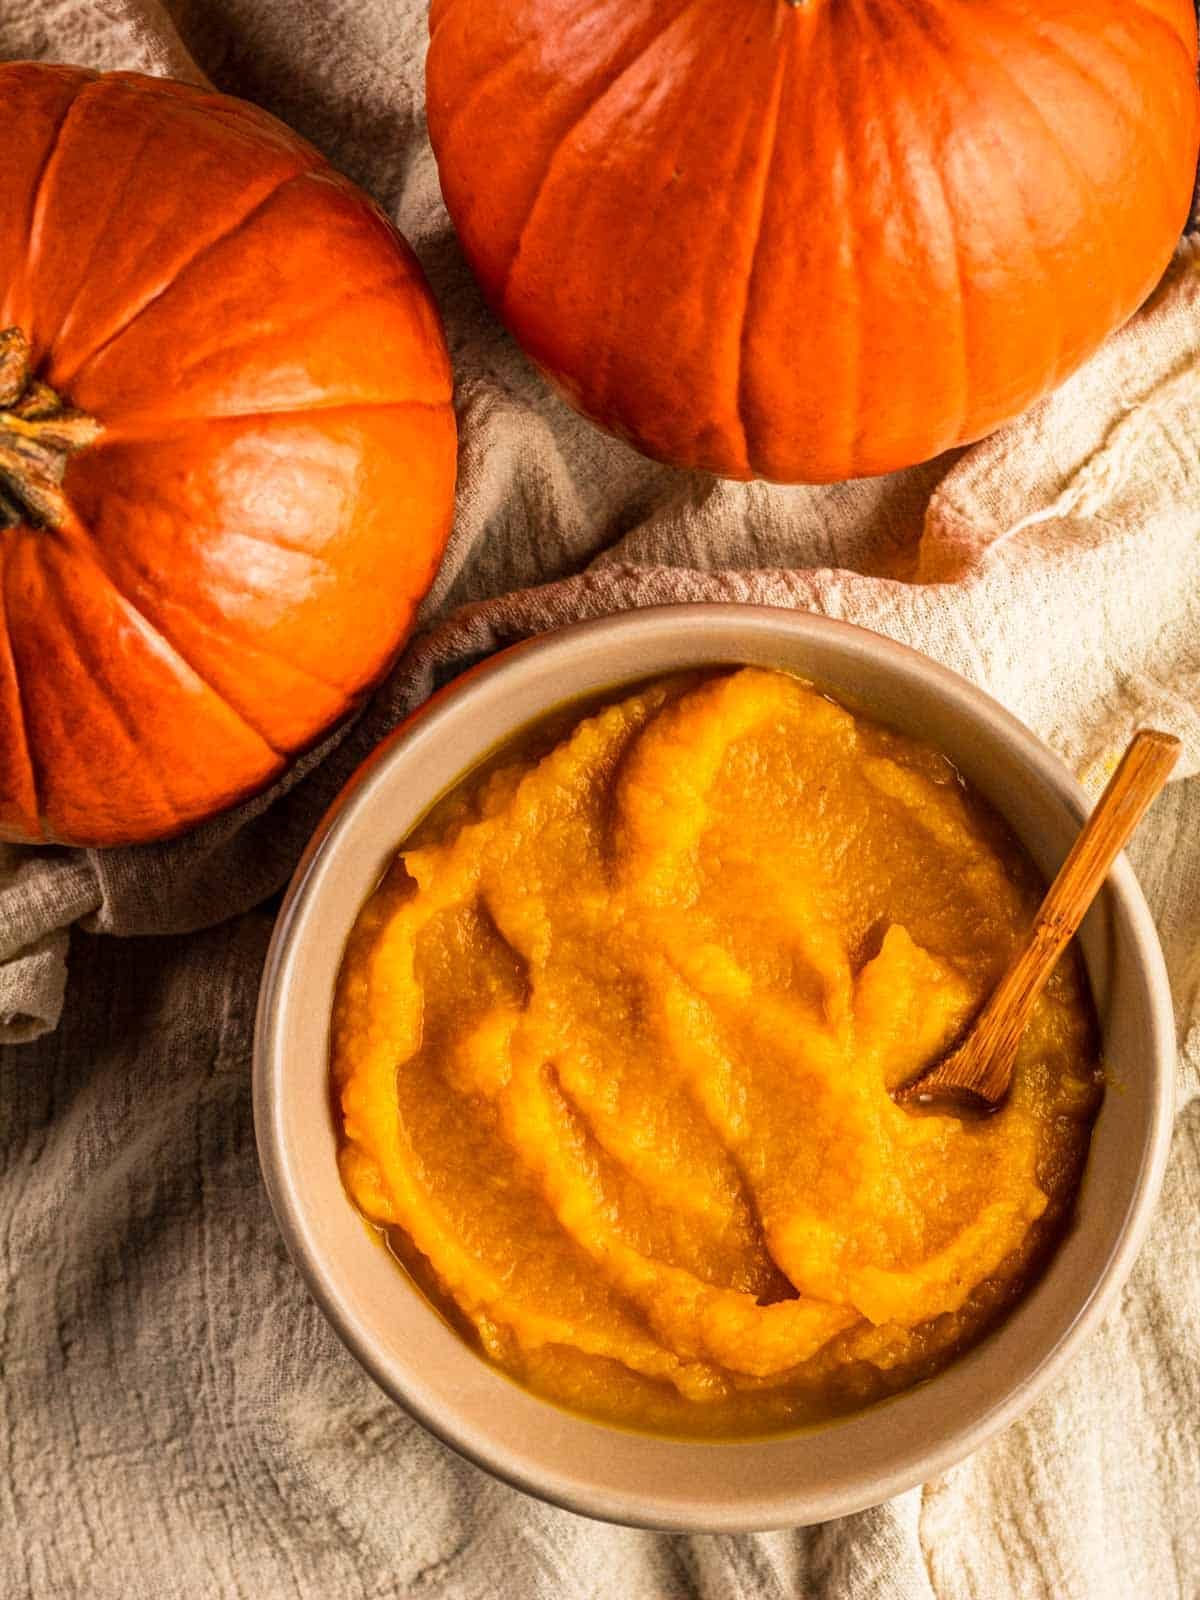 two pumpkins next to a tan ceramic bowl of pumpkin puree with a small wooden spoon